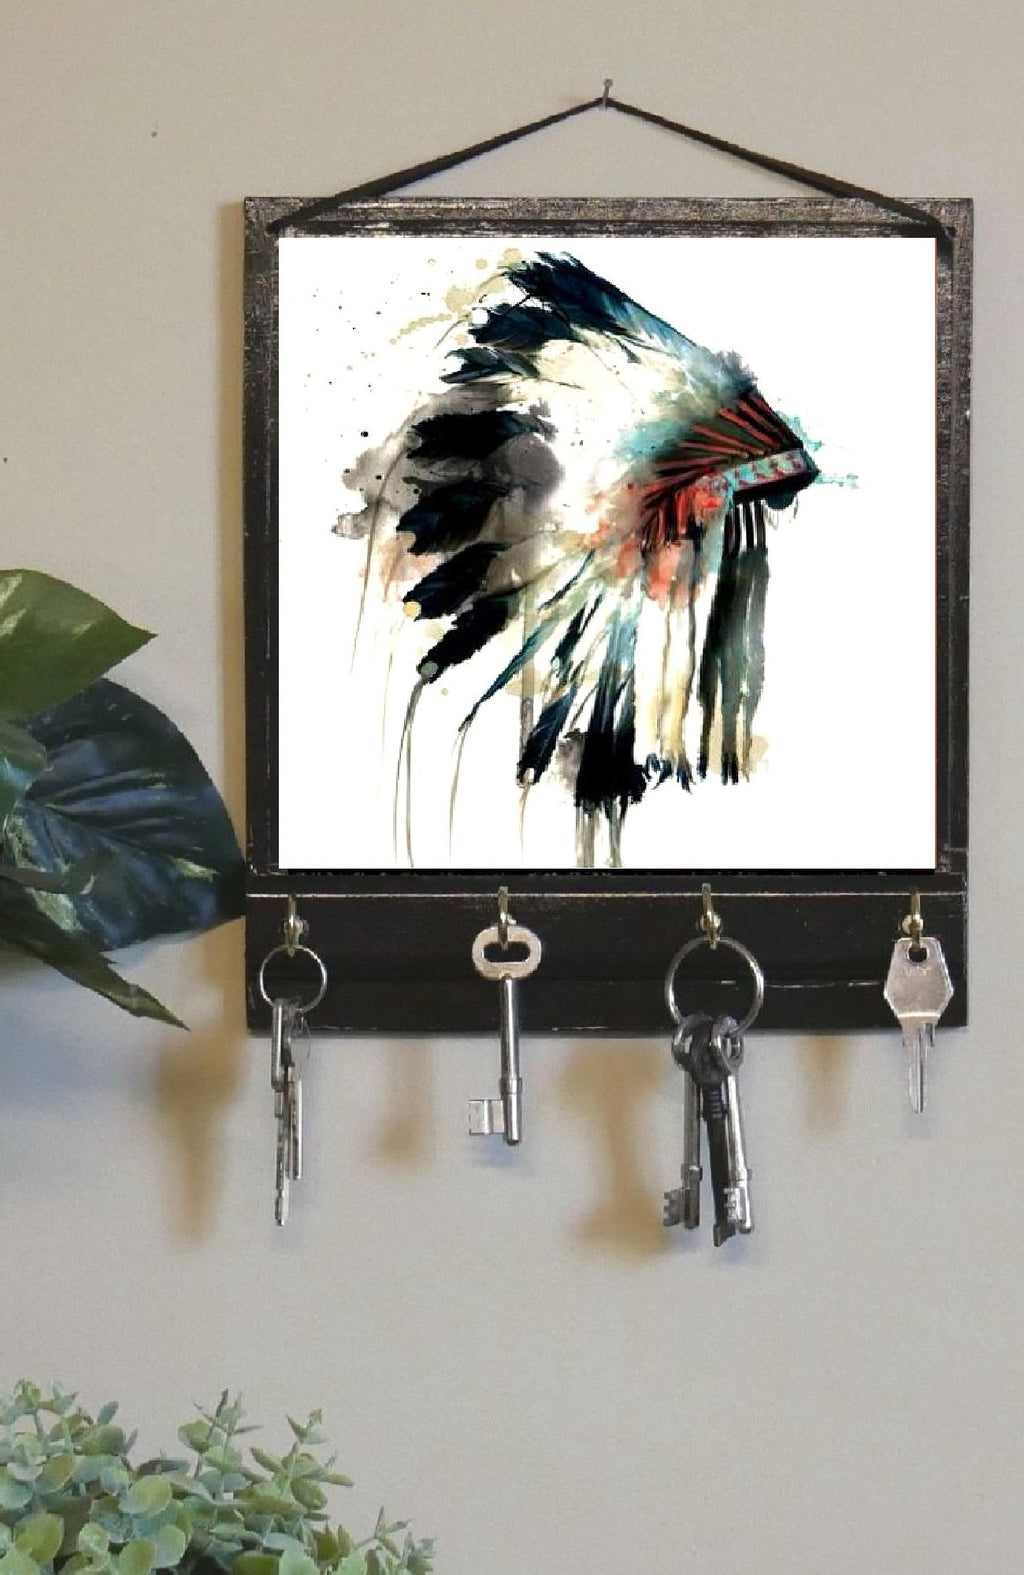 American-Indian-Headdress-Nchanted-Gifts